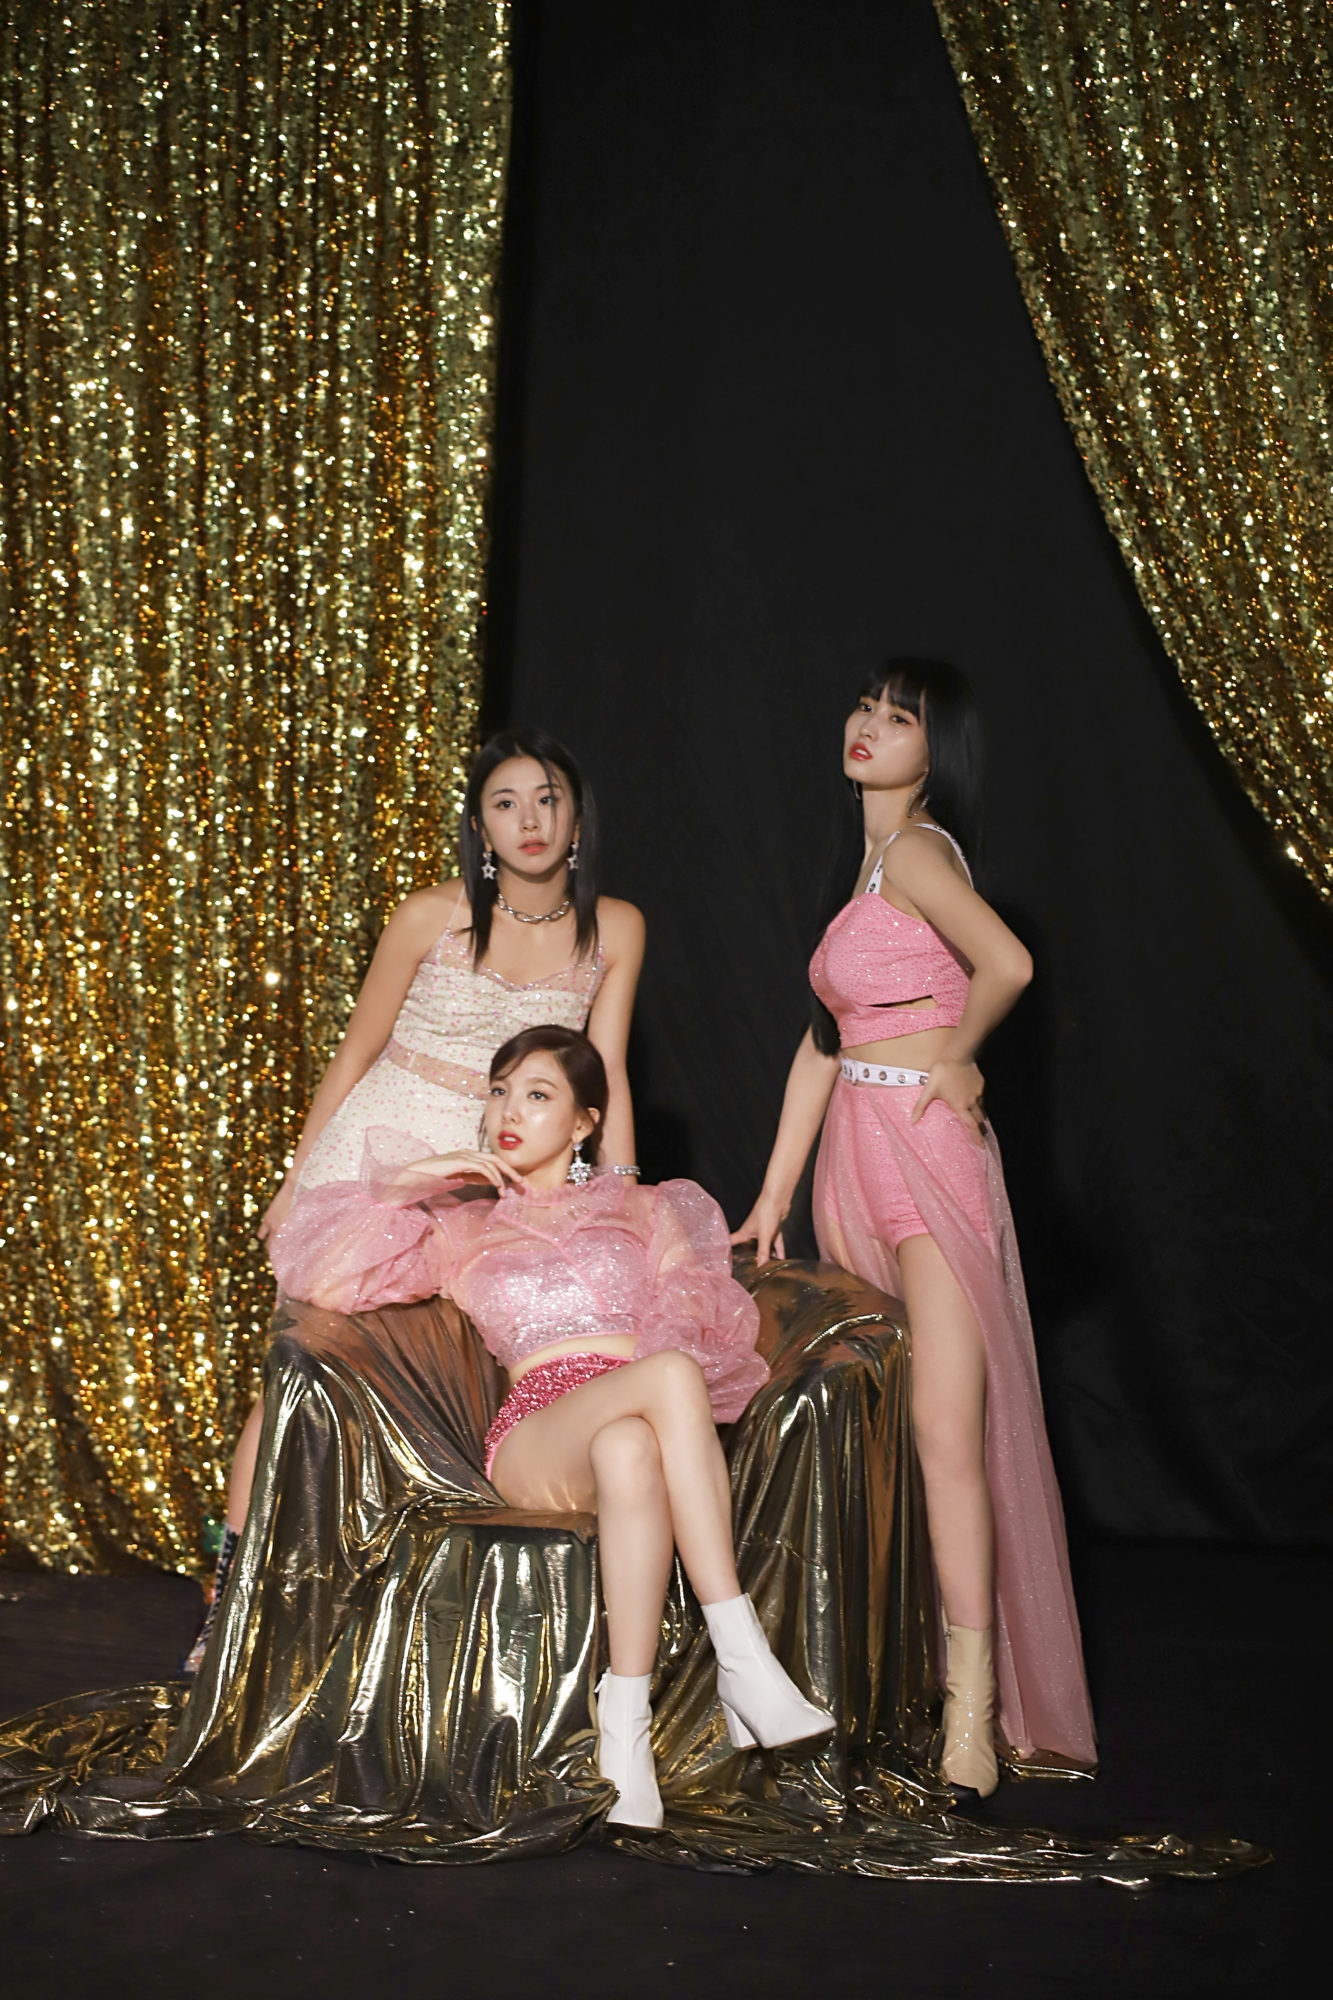 Twice Feel Special Naver Backstage Momo Chaeyoung Nayeon